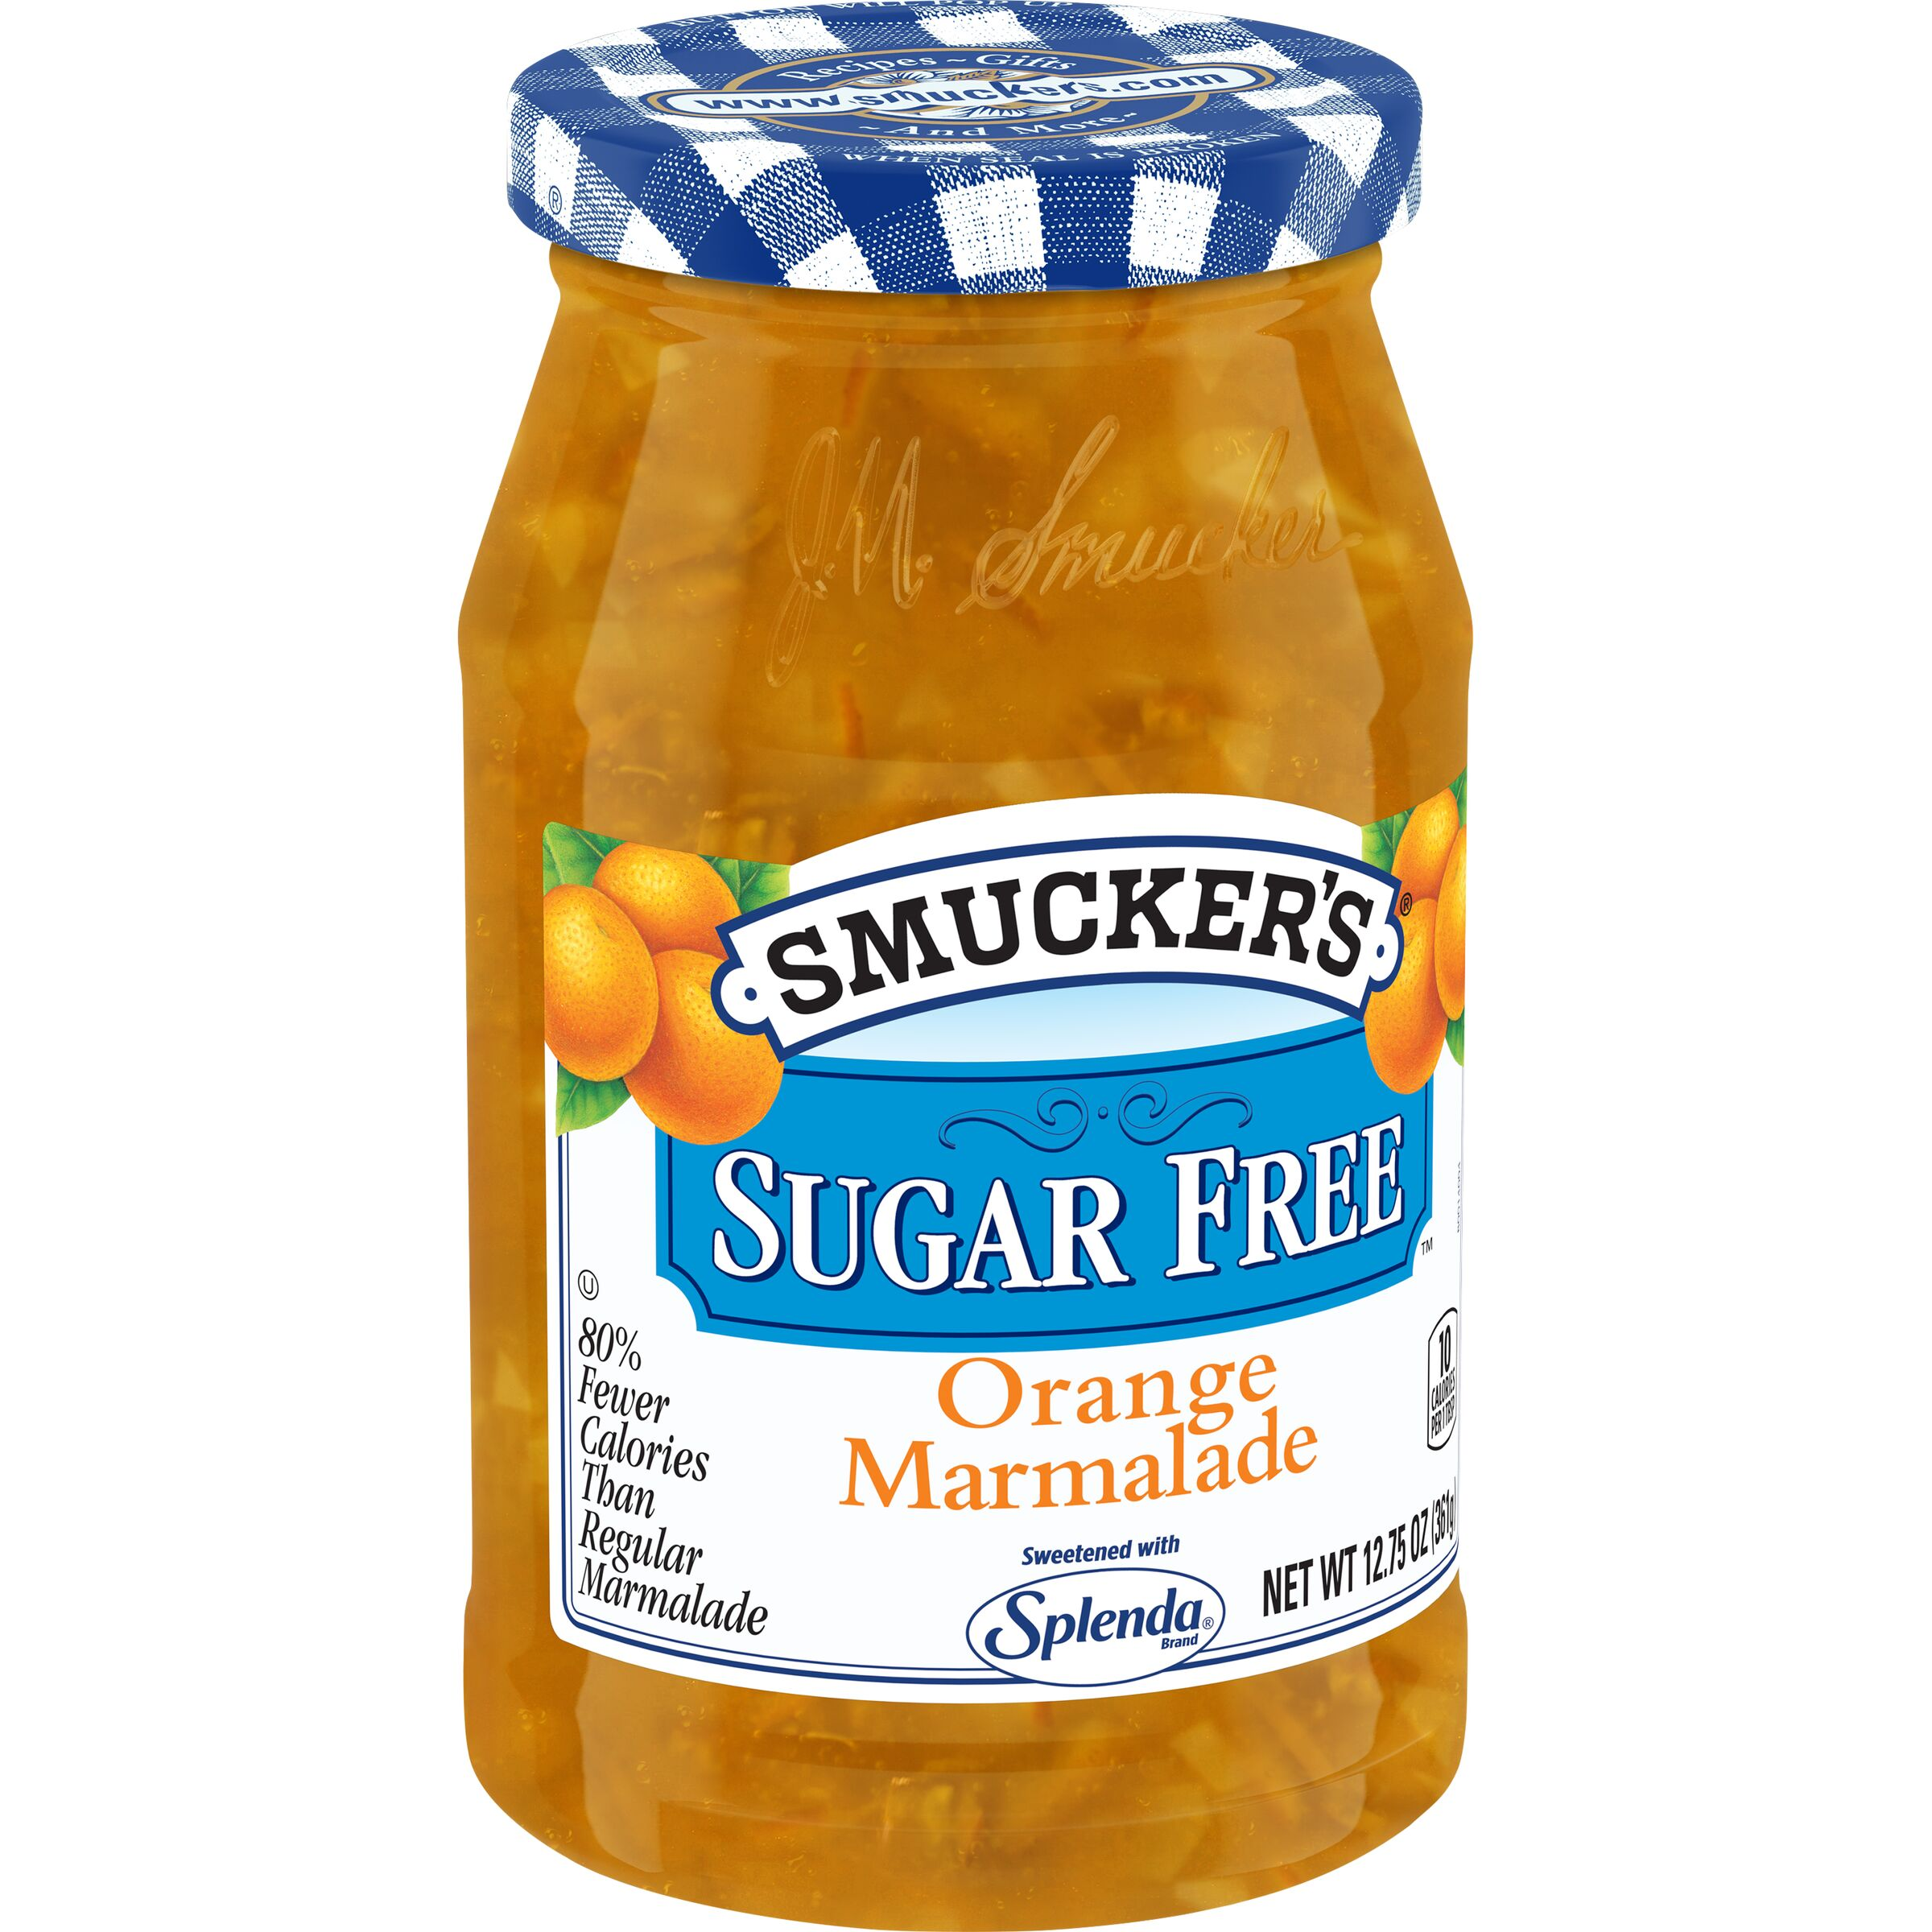 Smucker's SUGAR FREE Orange Marmalade with Splenda Brand Sweetener